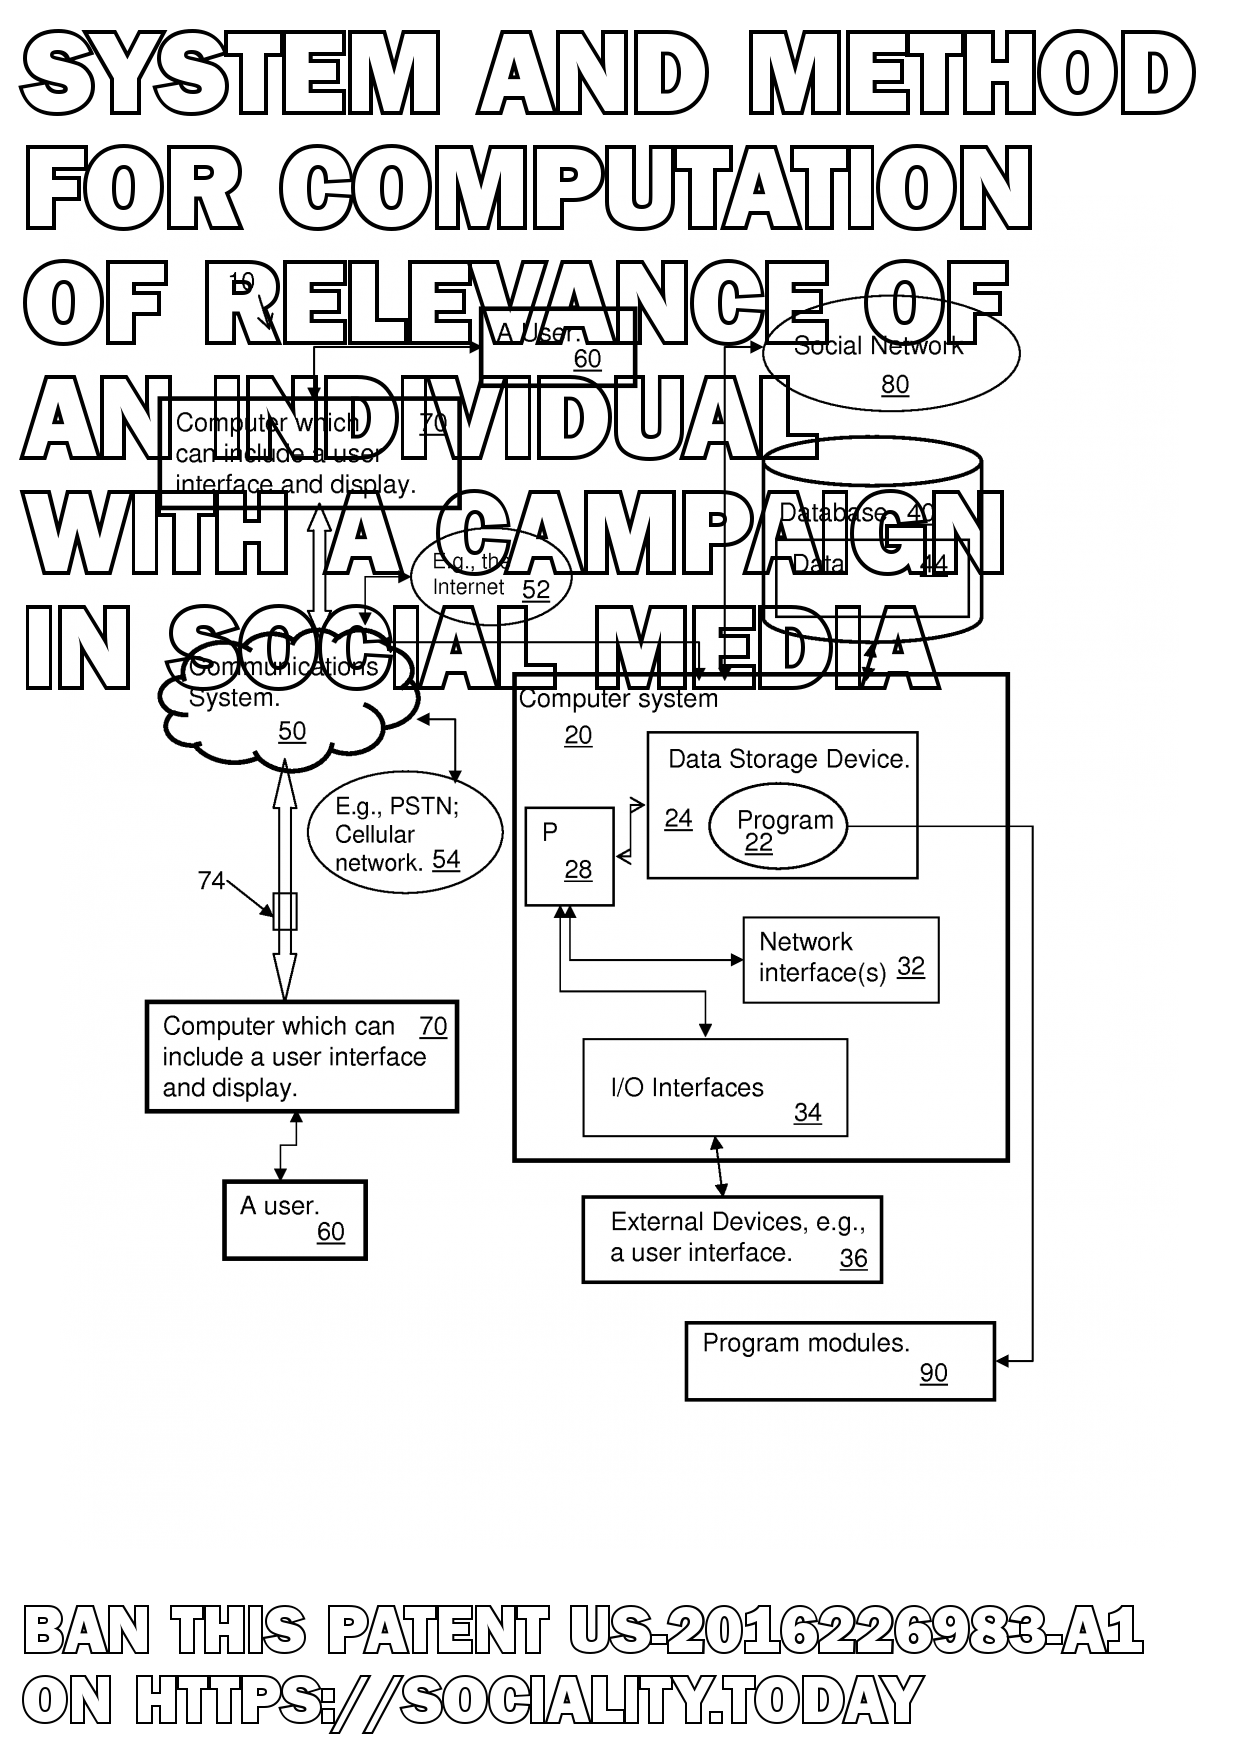 System and method for computation of relevance of an individual with a campaign in social media  - US-2016226983-A1